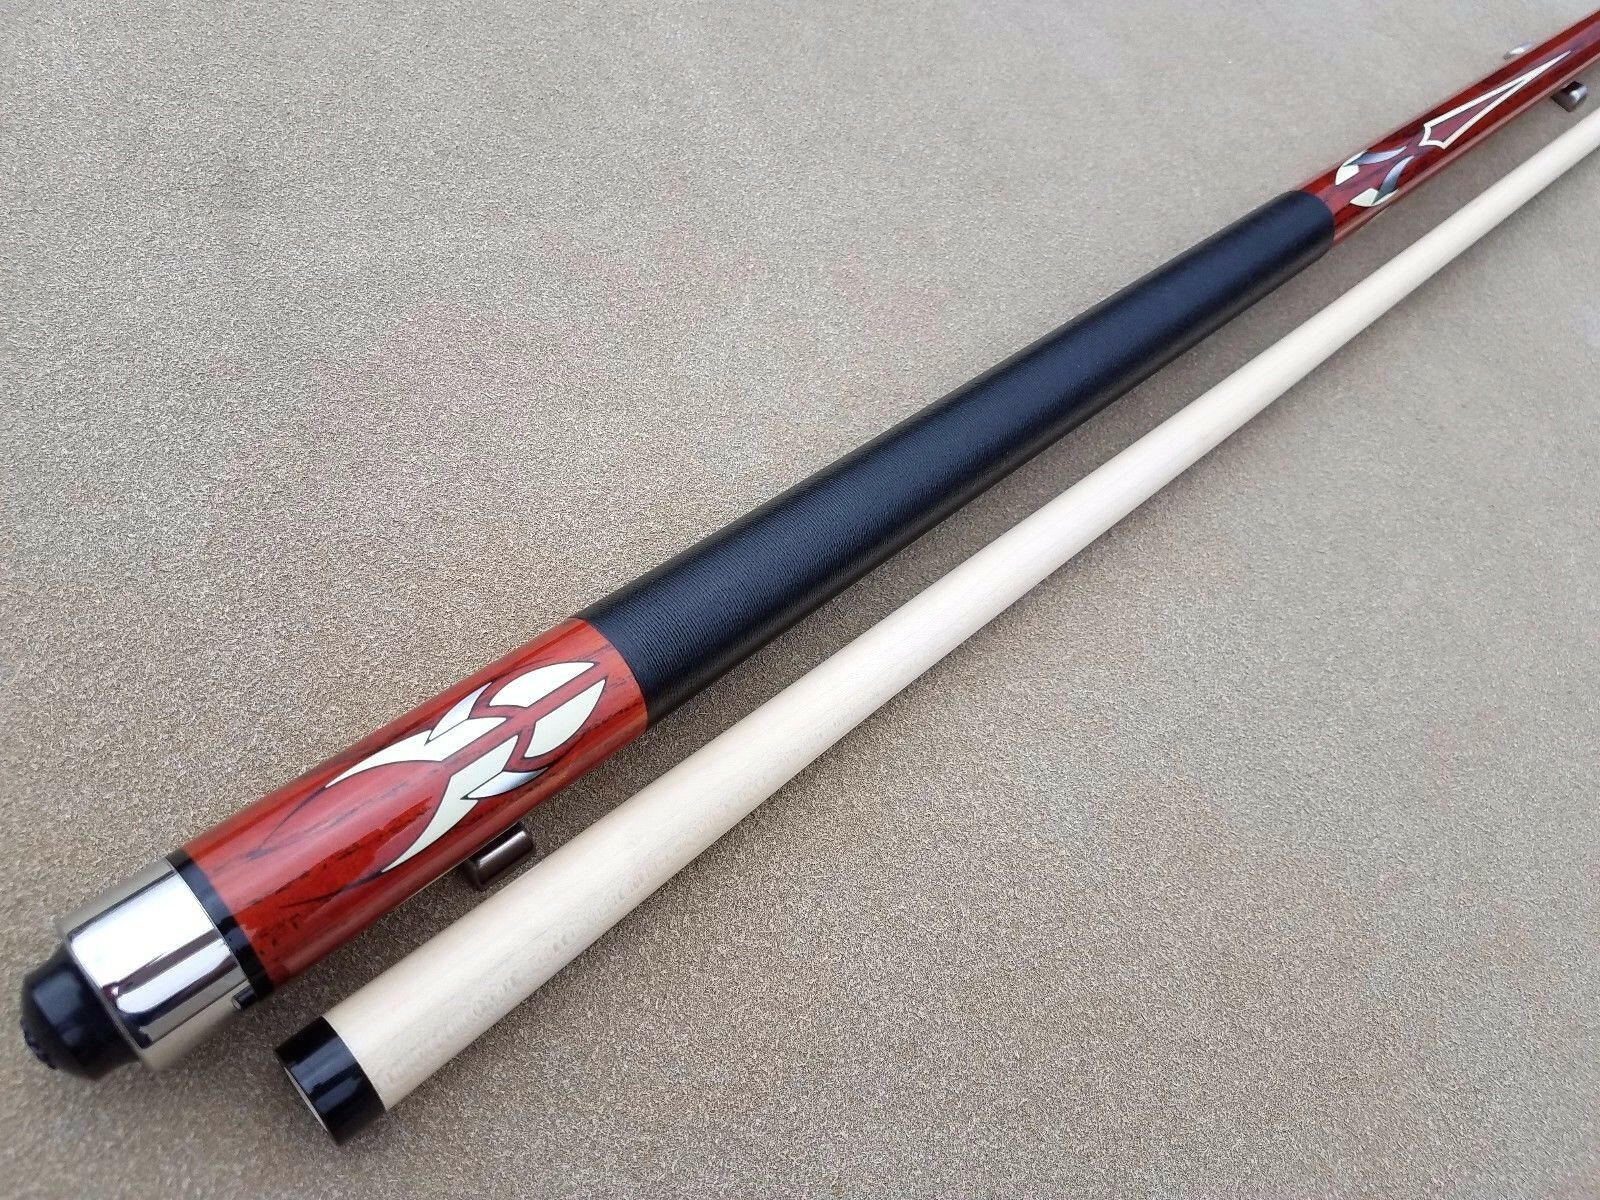 Nieuwe McDermott Star Series Pool Cue S55 Exotic Hout, Linen Wrap, 3 8x10 Pin Joint